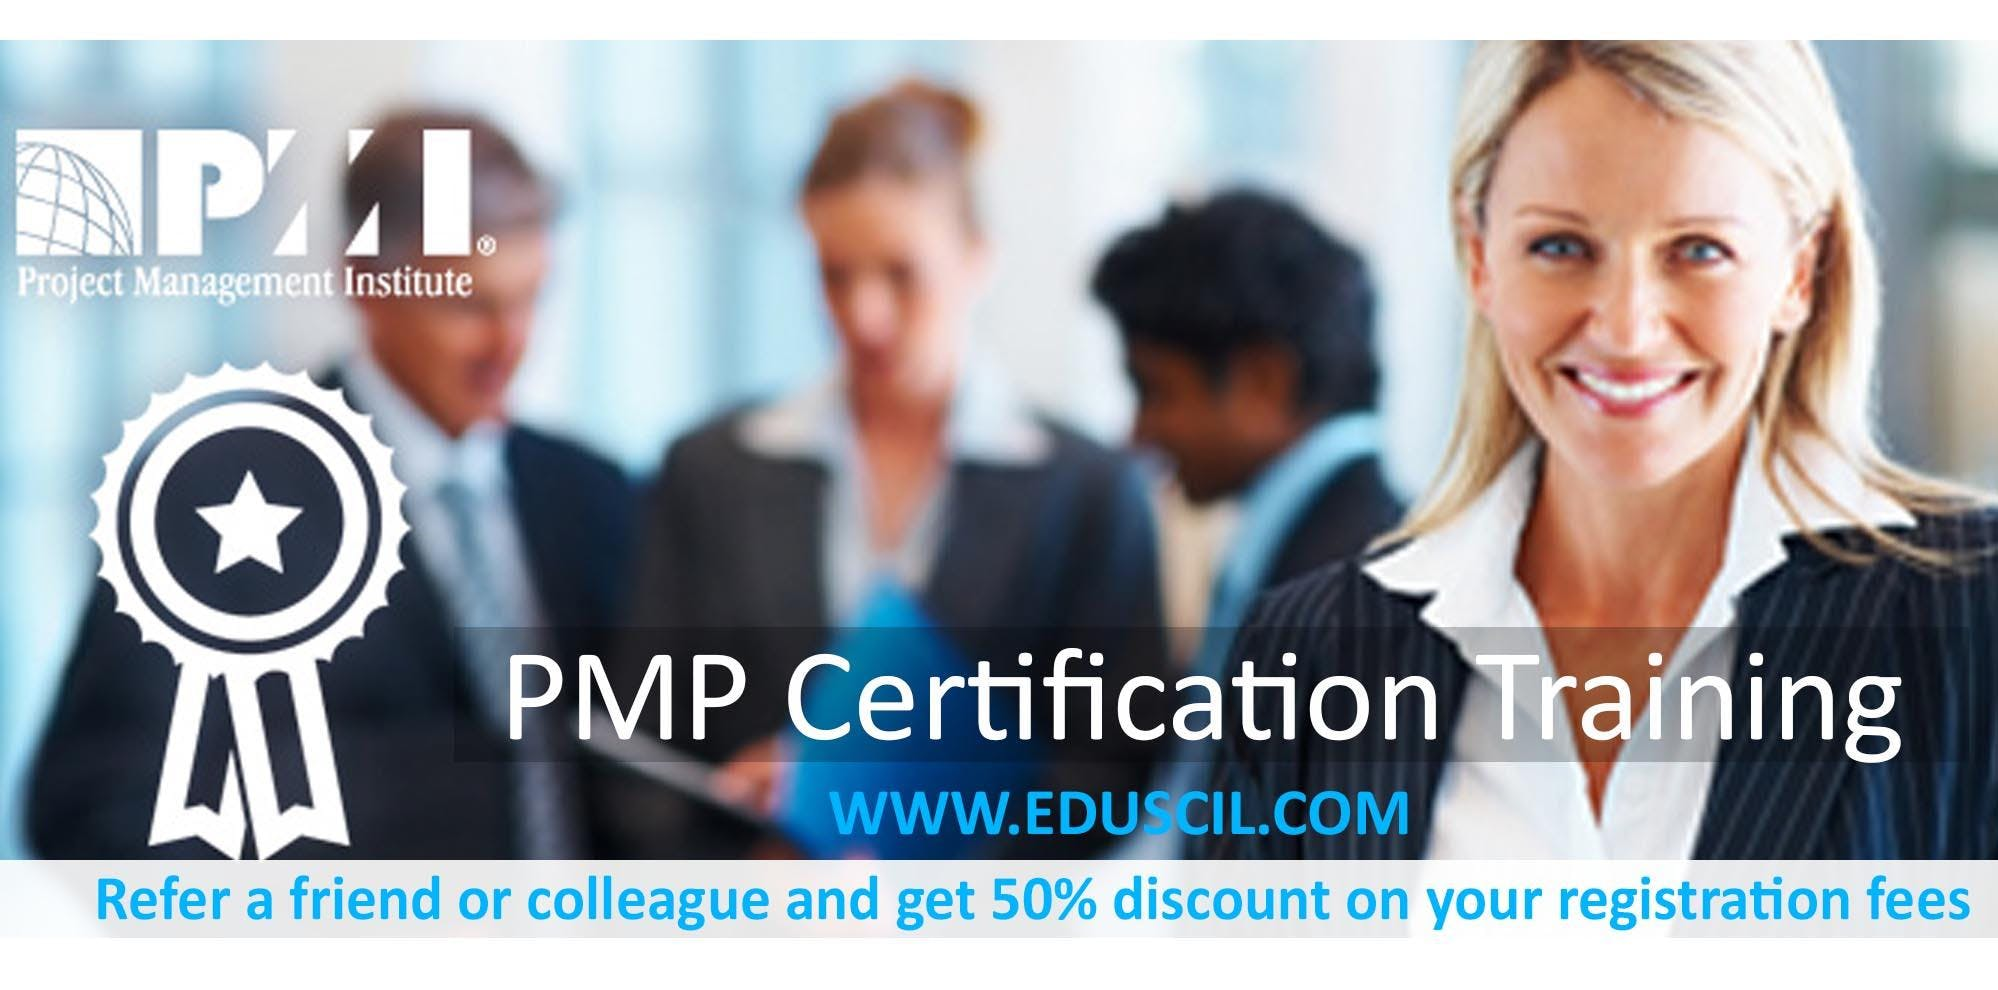 Pmp Classroom Training In Virginia Beach Va Usa Eduscil At